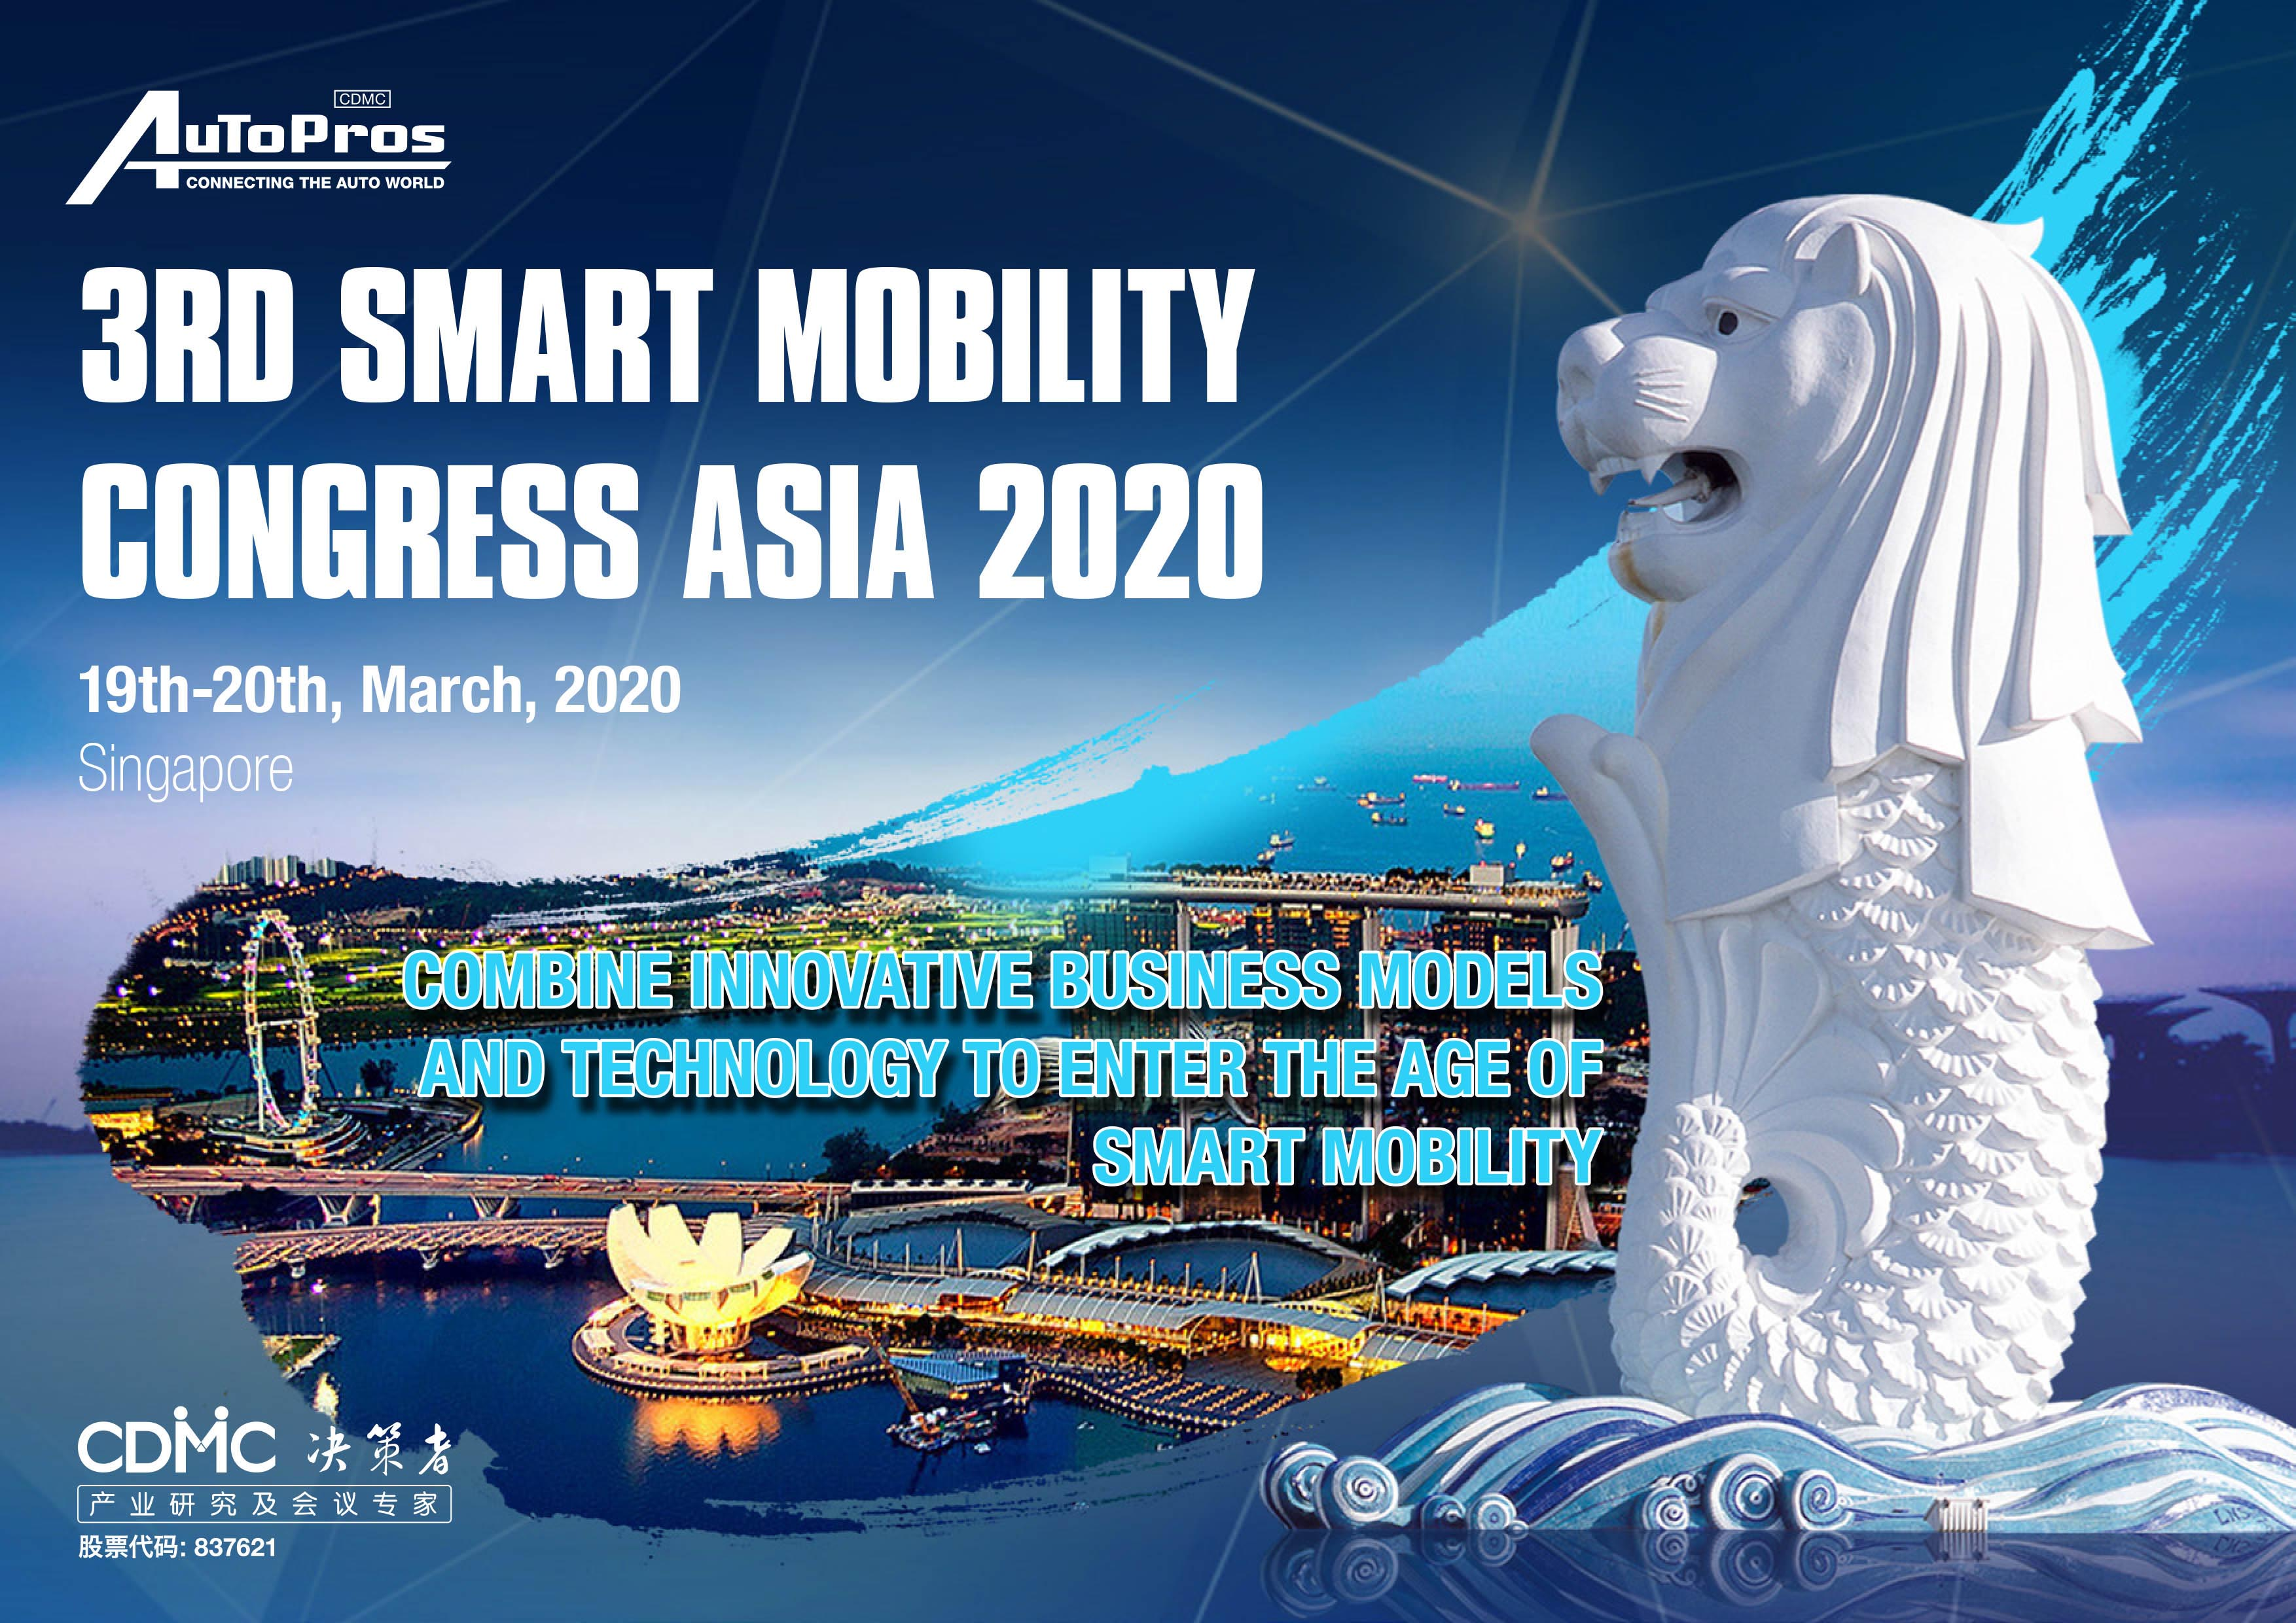 3rd Smart Mobility Congress Asia 2020 organized by Shanghai CDMC Group